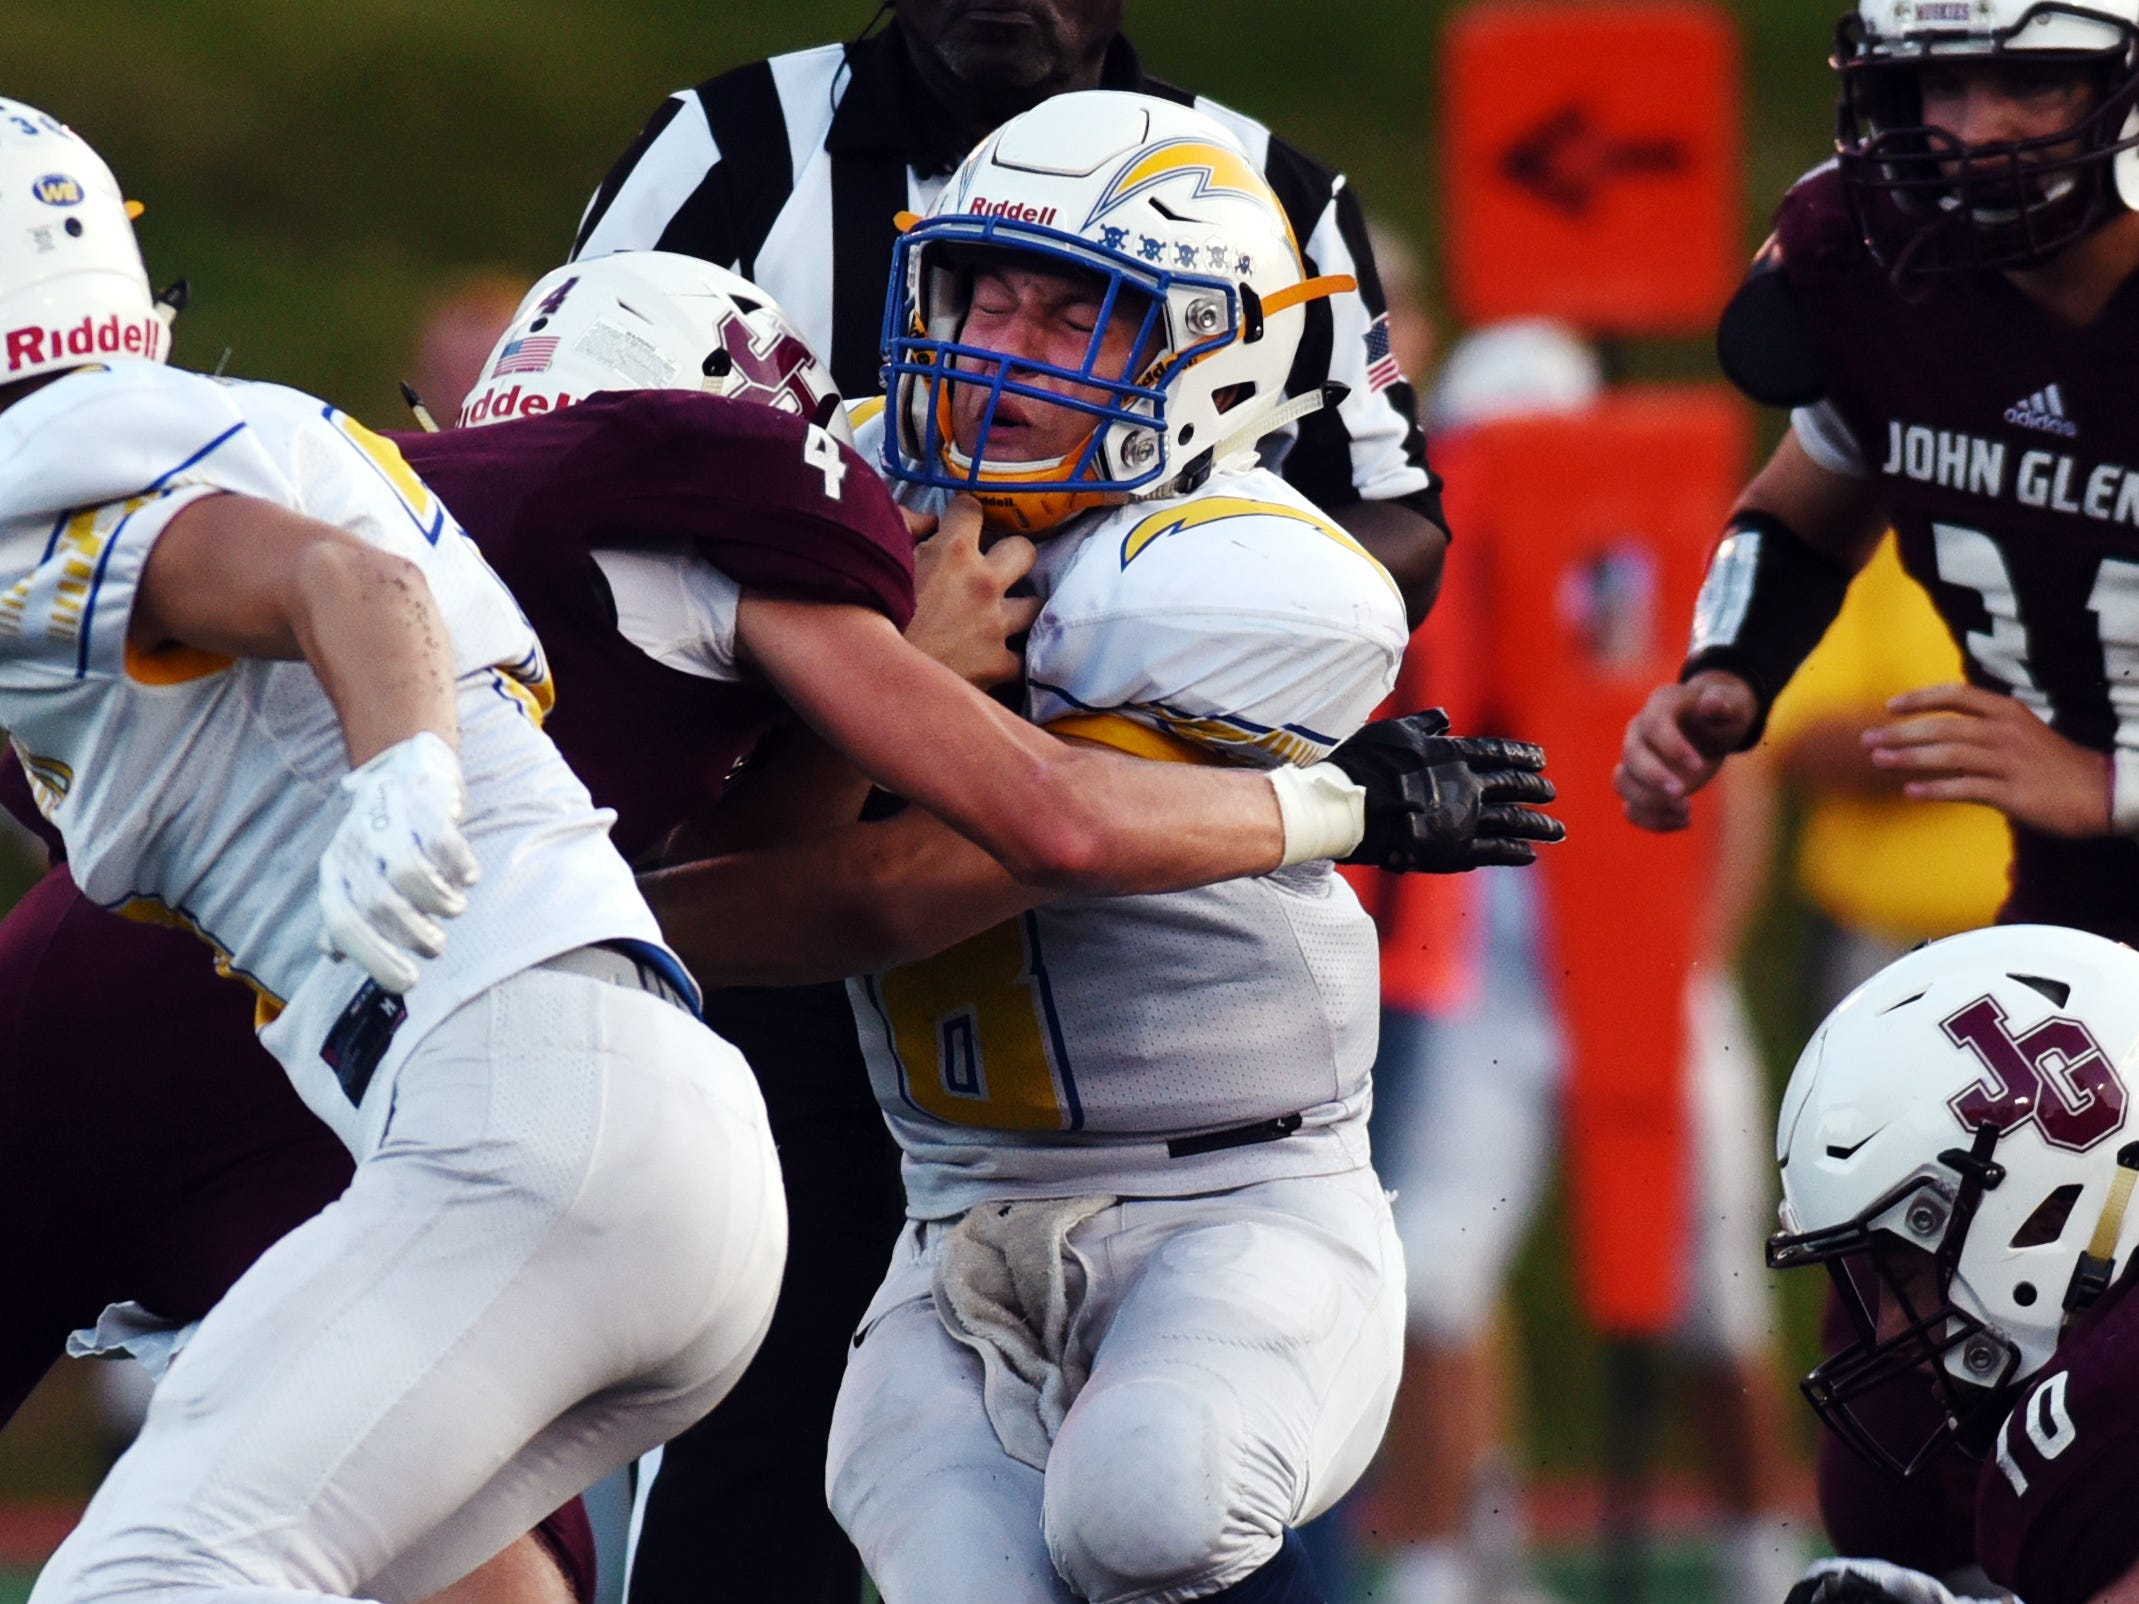 Hunter Adolph is tackled by a John Glenn defender.